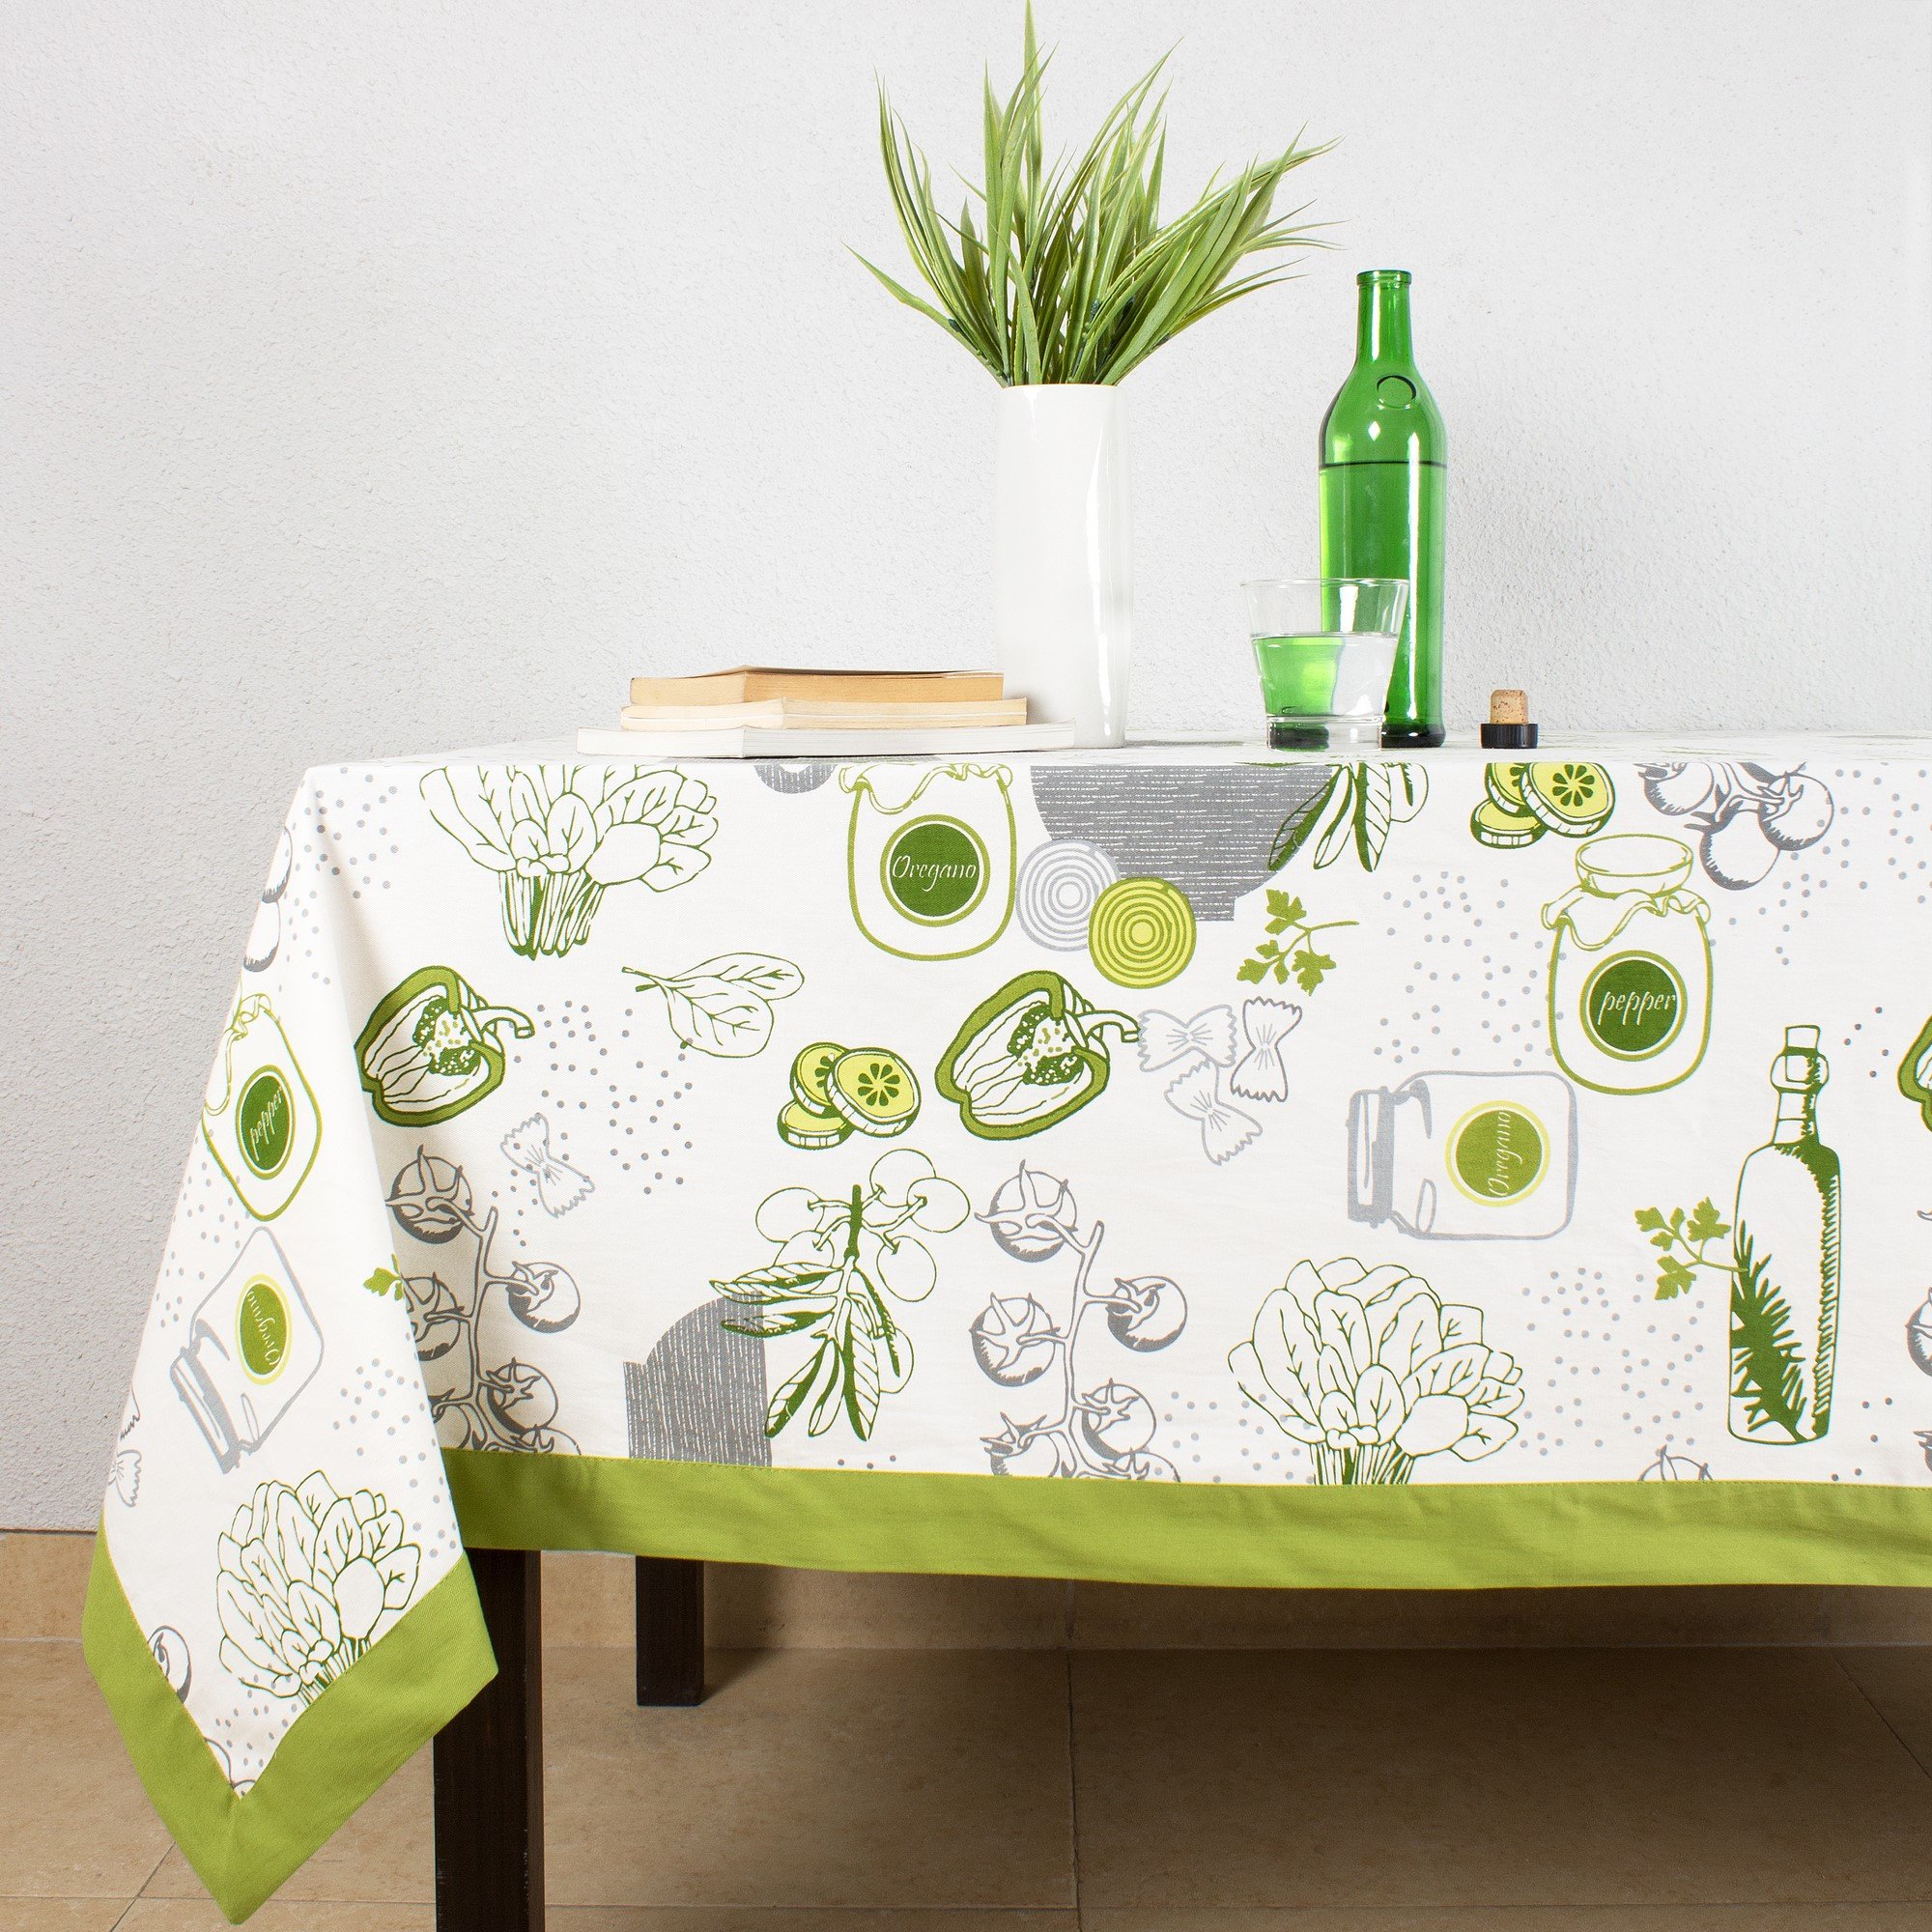 House This ® 100% Cotton Tablecloth, Gourmet Salad Design, Kitchen Linen Dinner  Table Cover, Green, 60 In X 90 In   Walmart.com